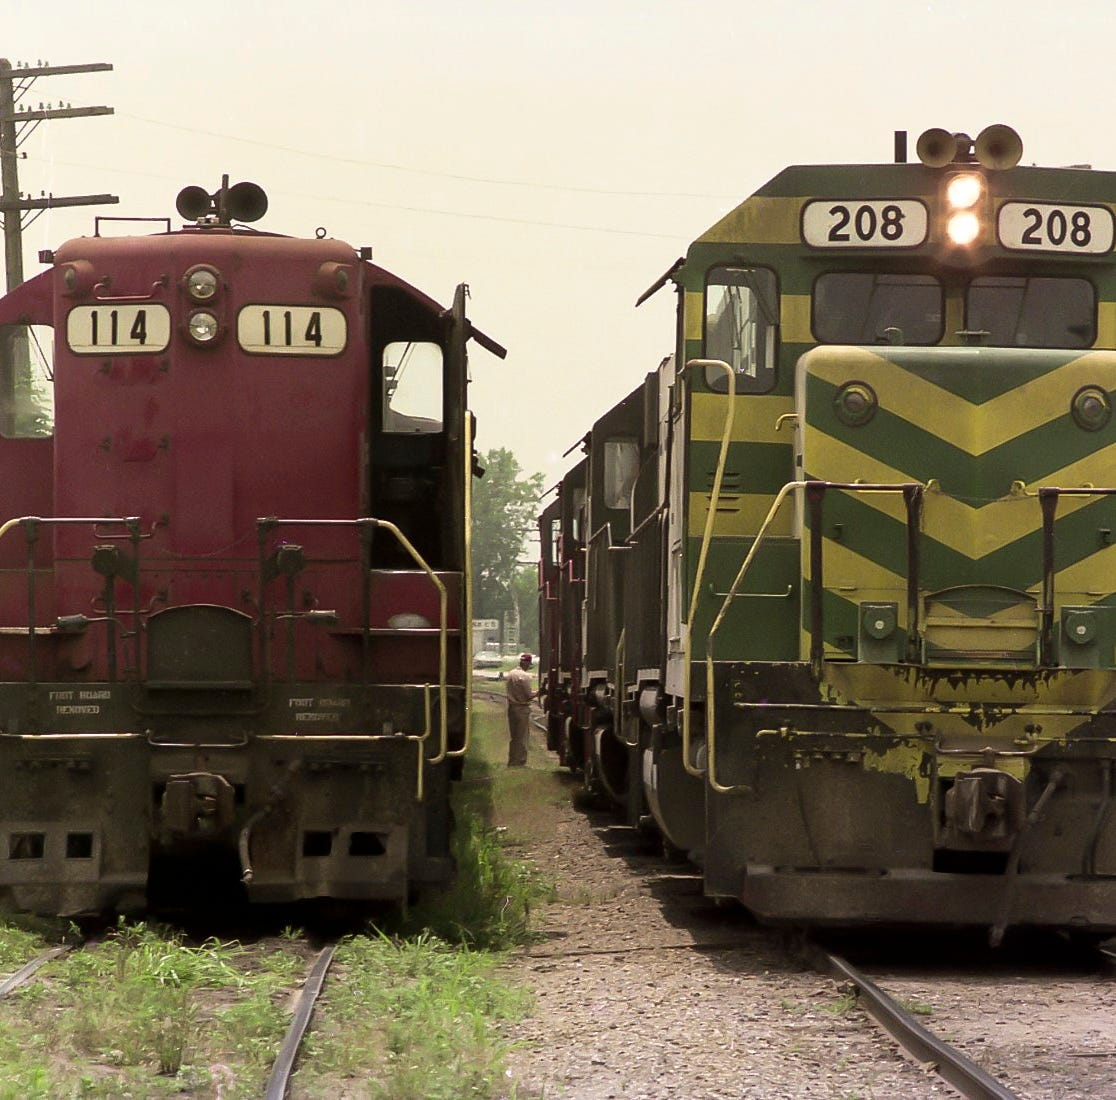 Katy Railroad helped shape a growing region